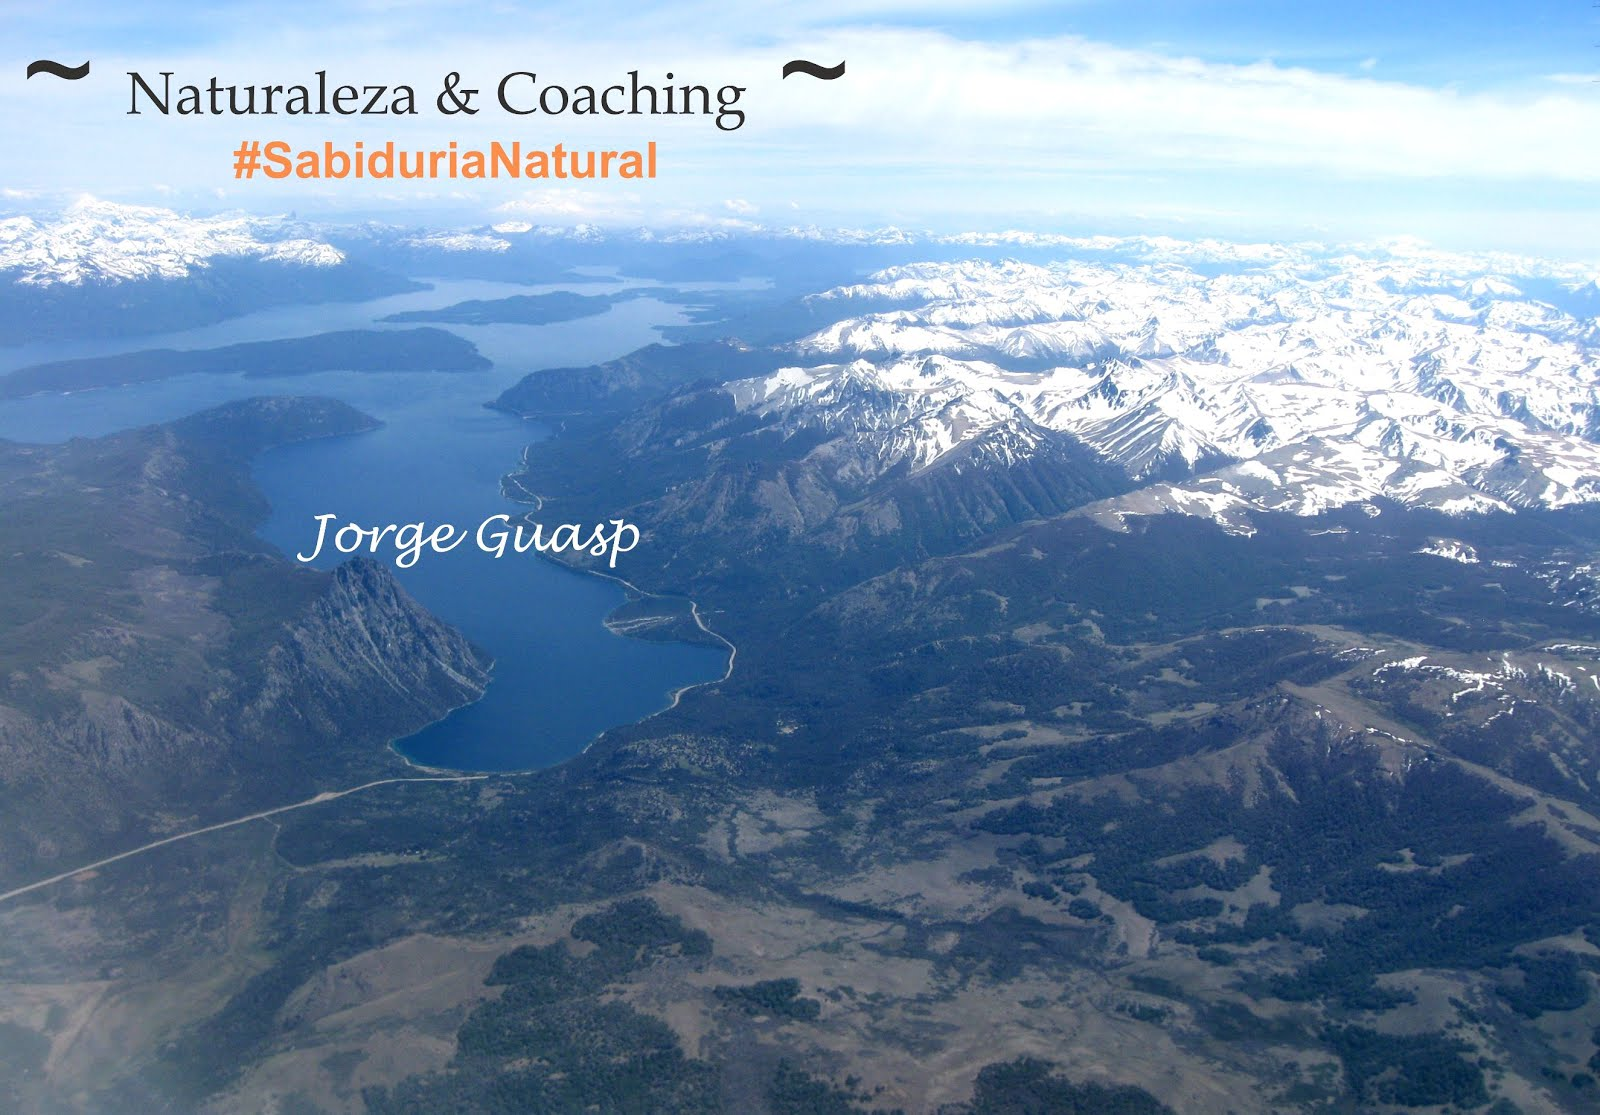 Naturaleza y Coaching